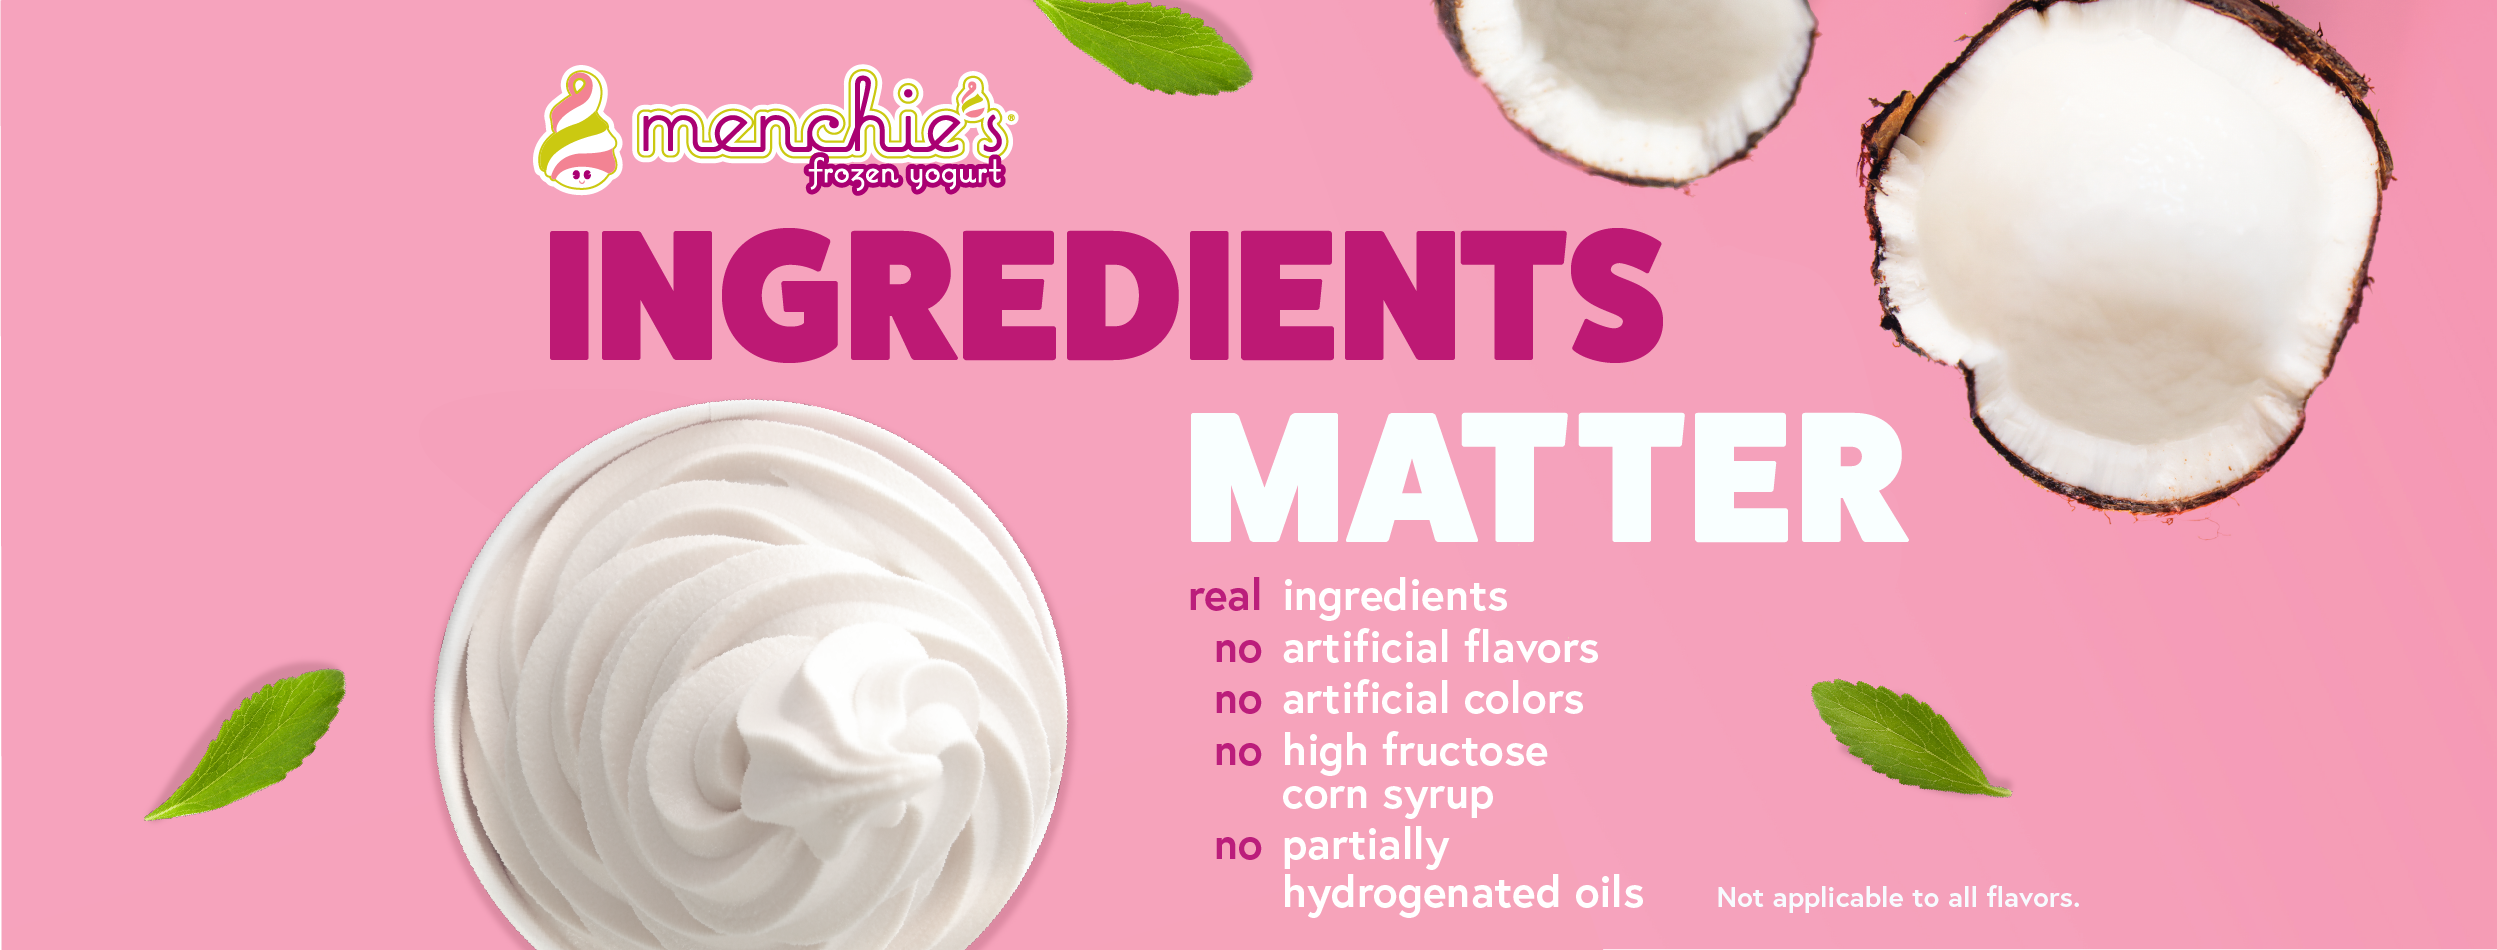 We care about the ingredients that go into our products! Menchie's is  a treat that not only tastes great, but it's also better for you!